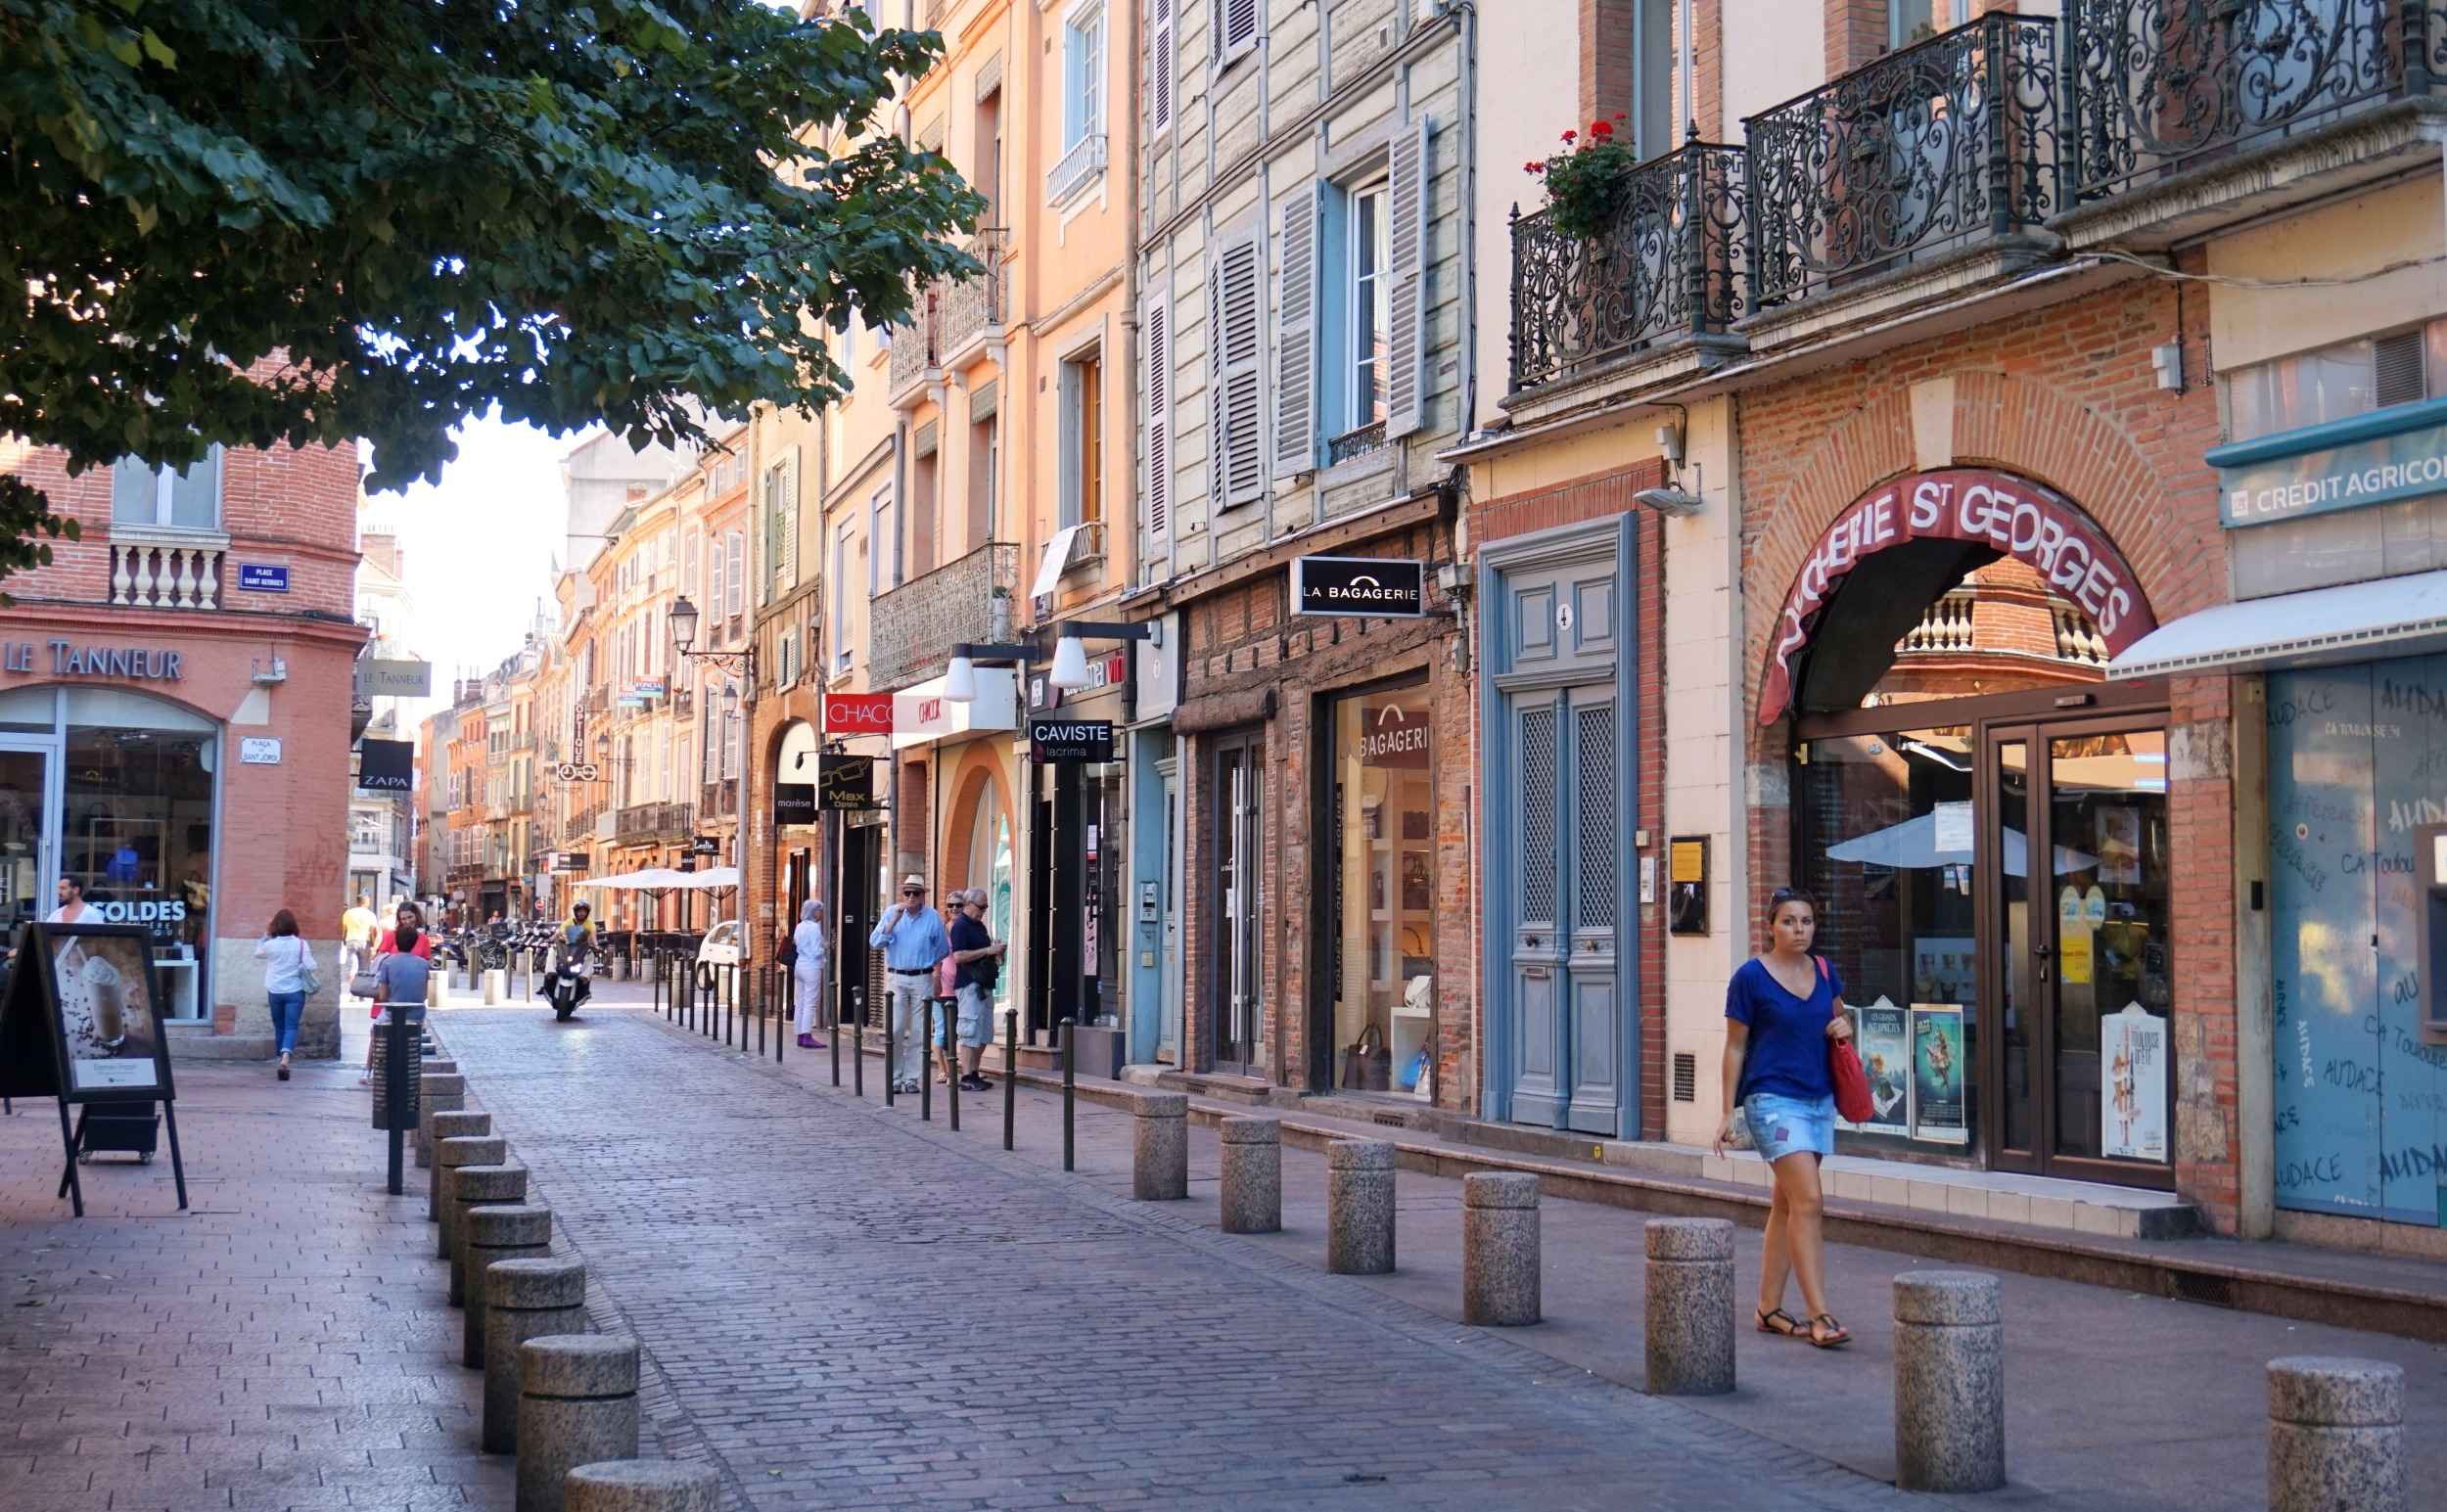 Balade-Toulouse-St-Etienne-5